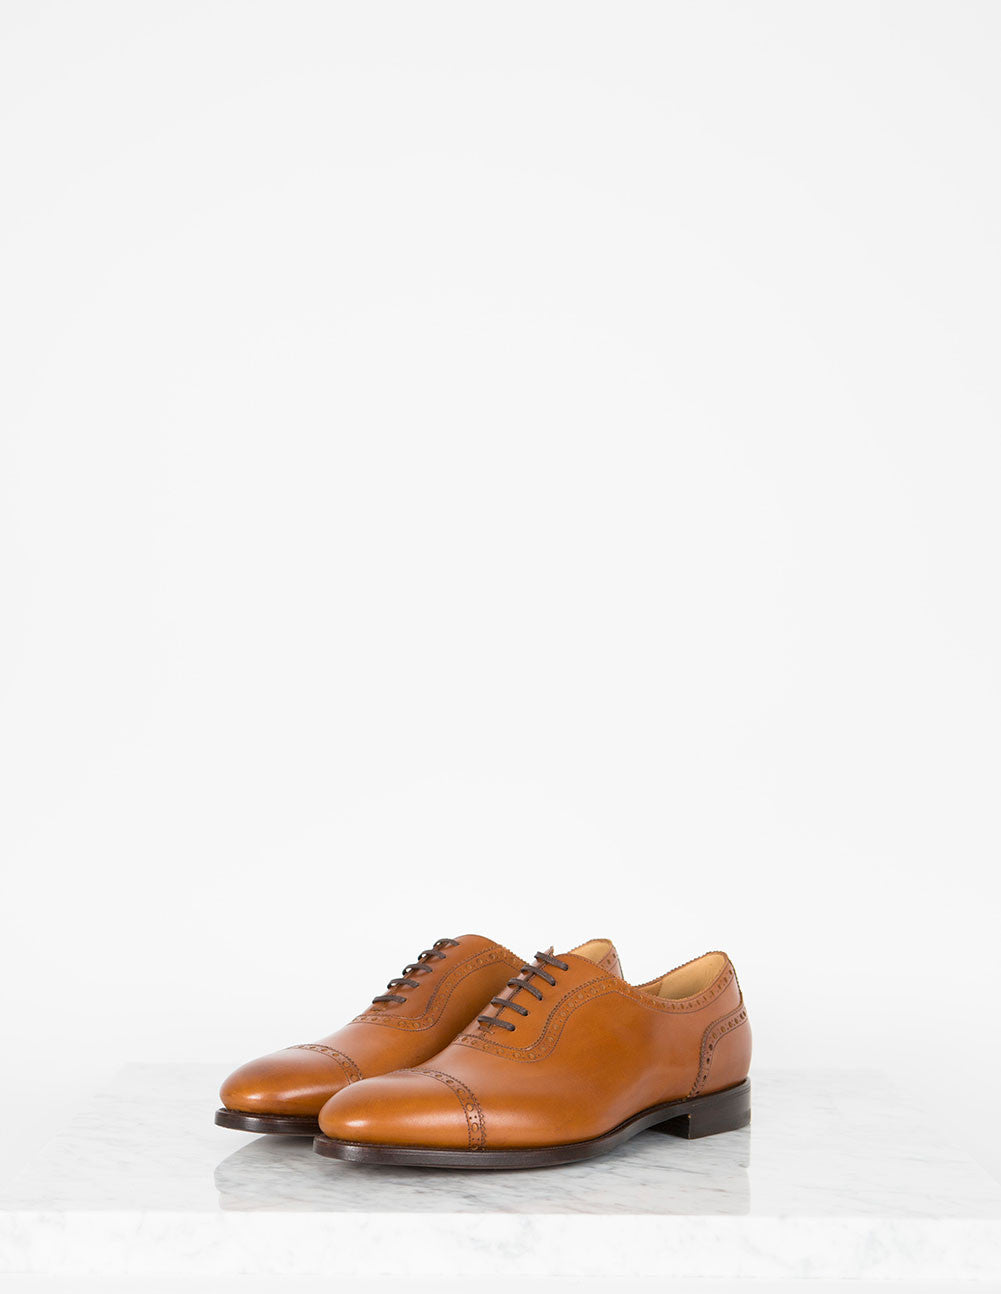 Brummel Lace Up Oxford